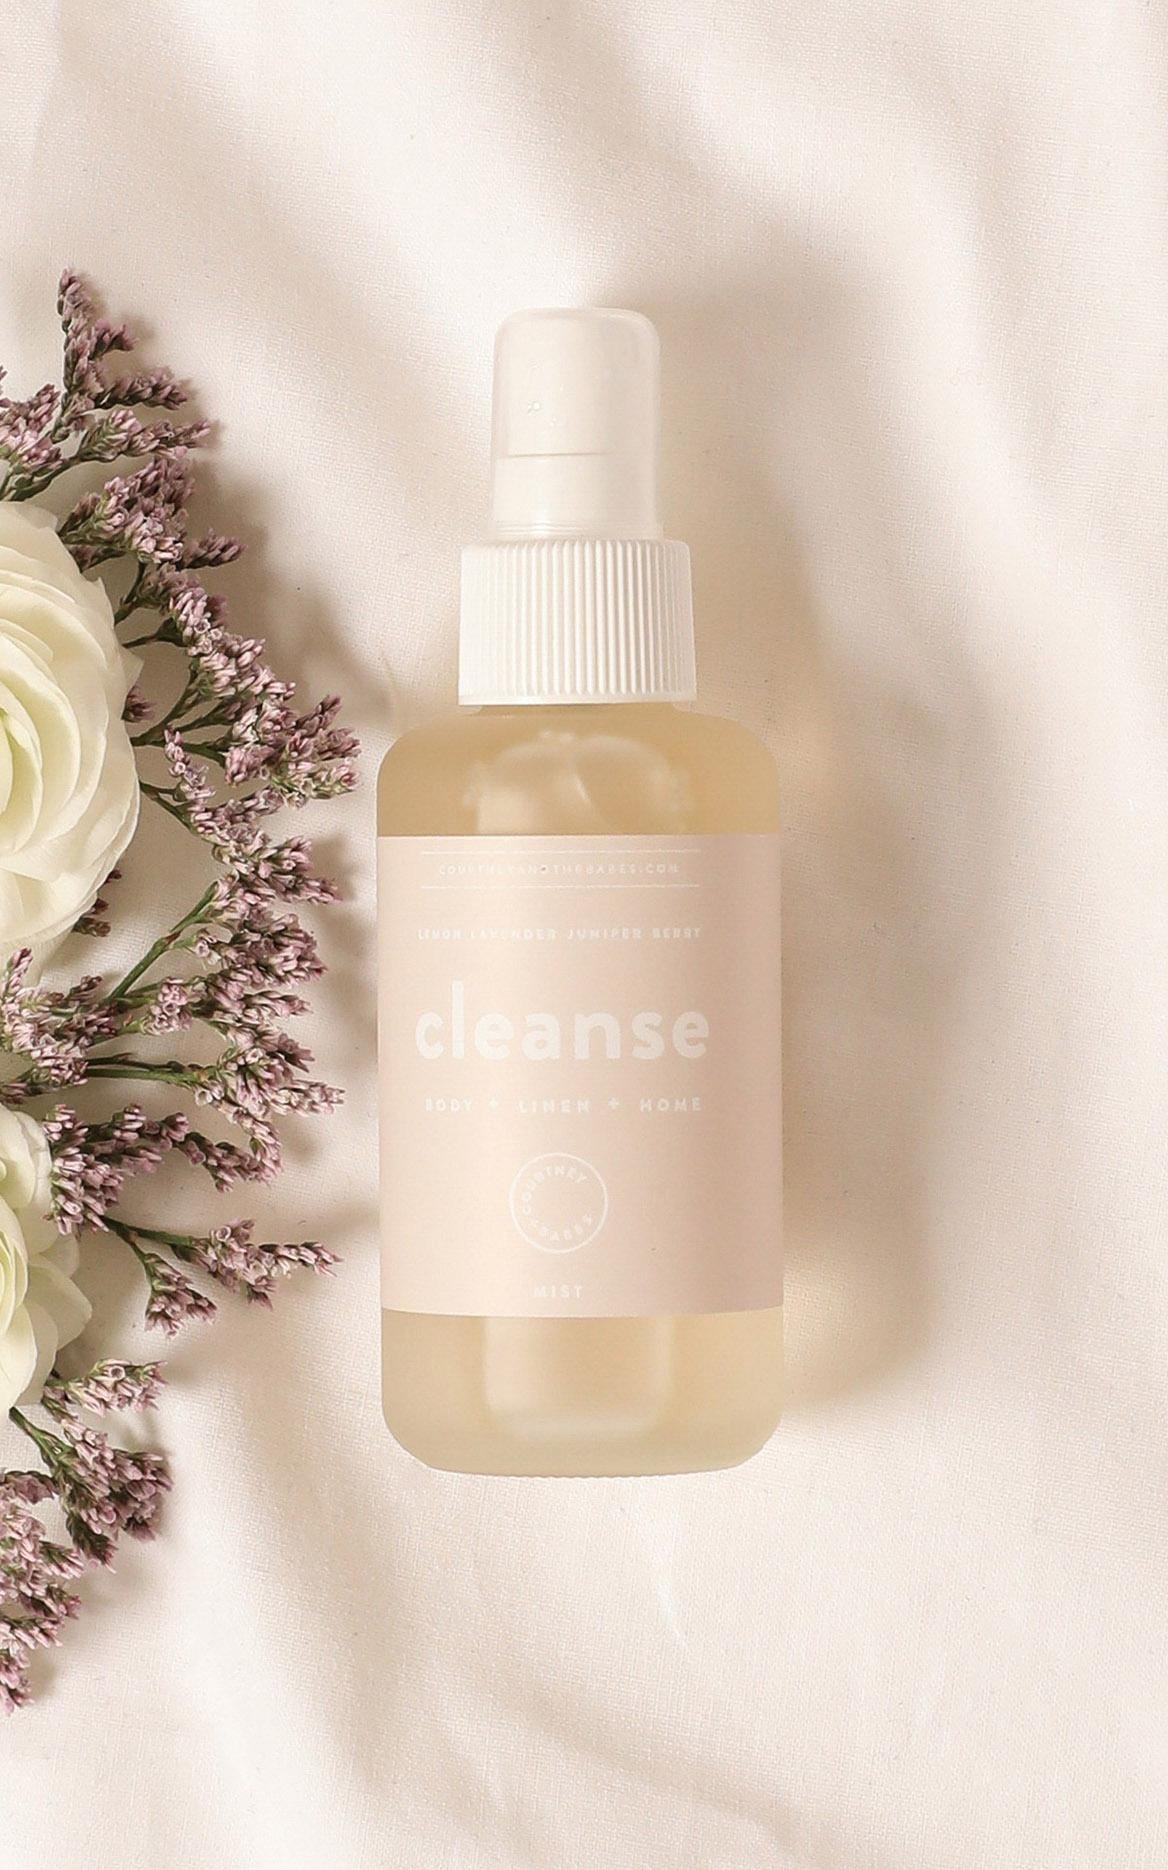 Courtney + Babes - Cleanse Mist 100ml, Pink, hi-res image number null